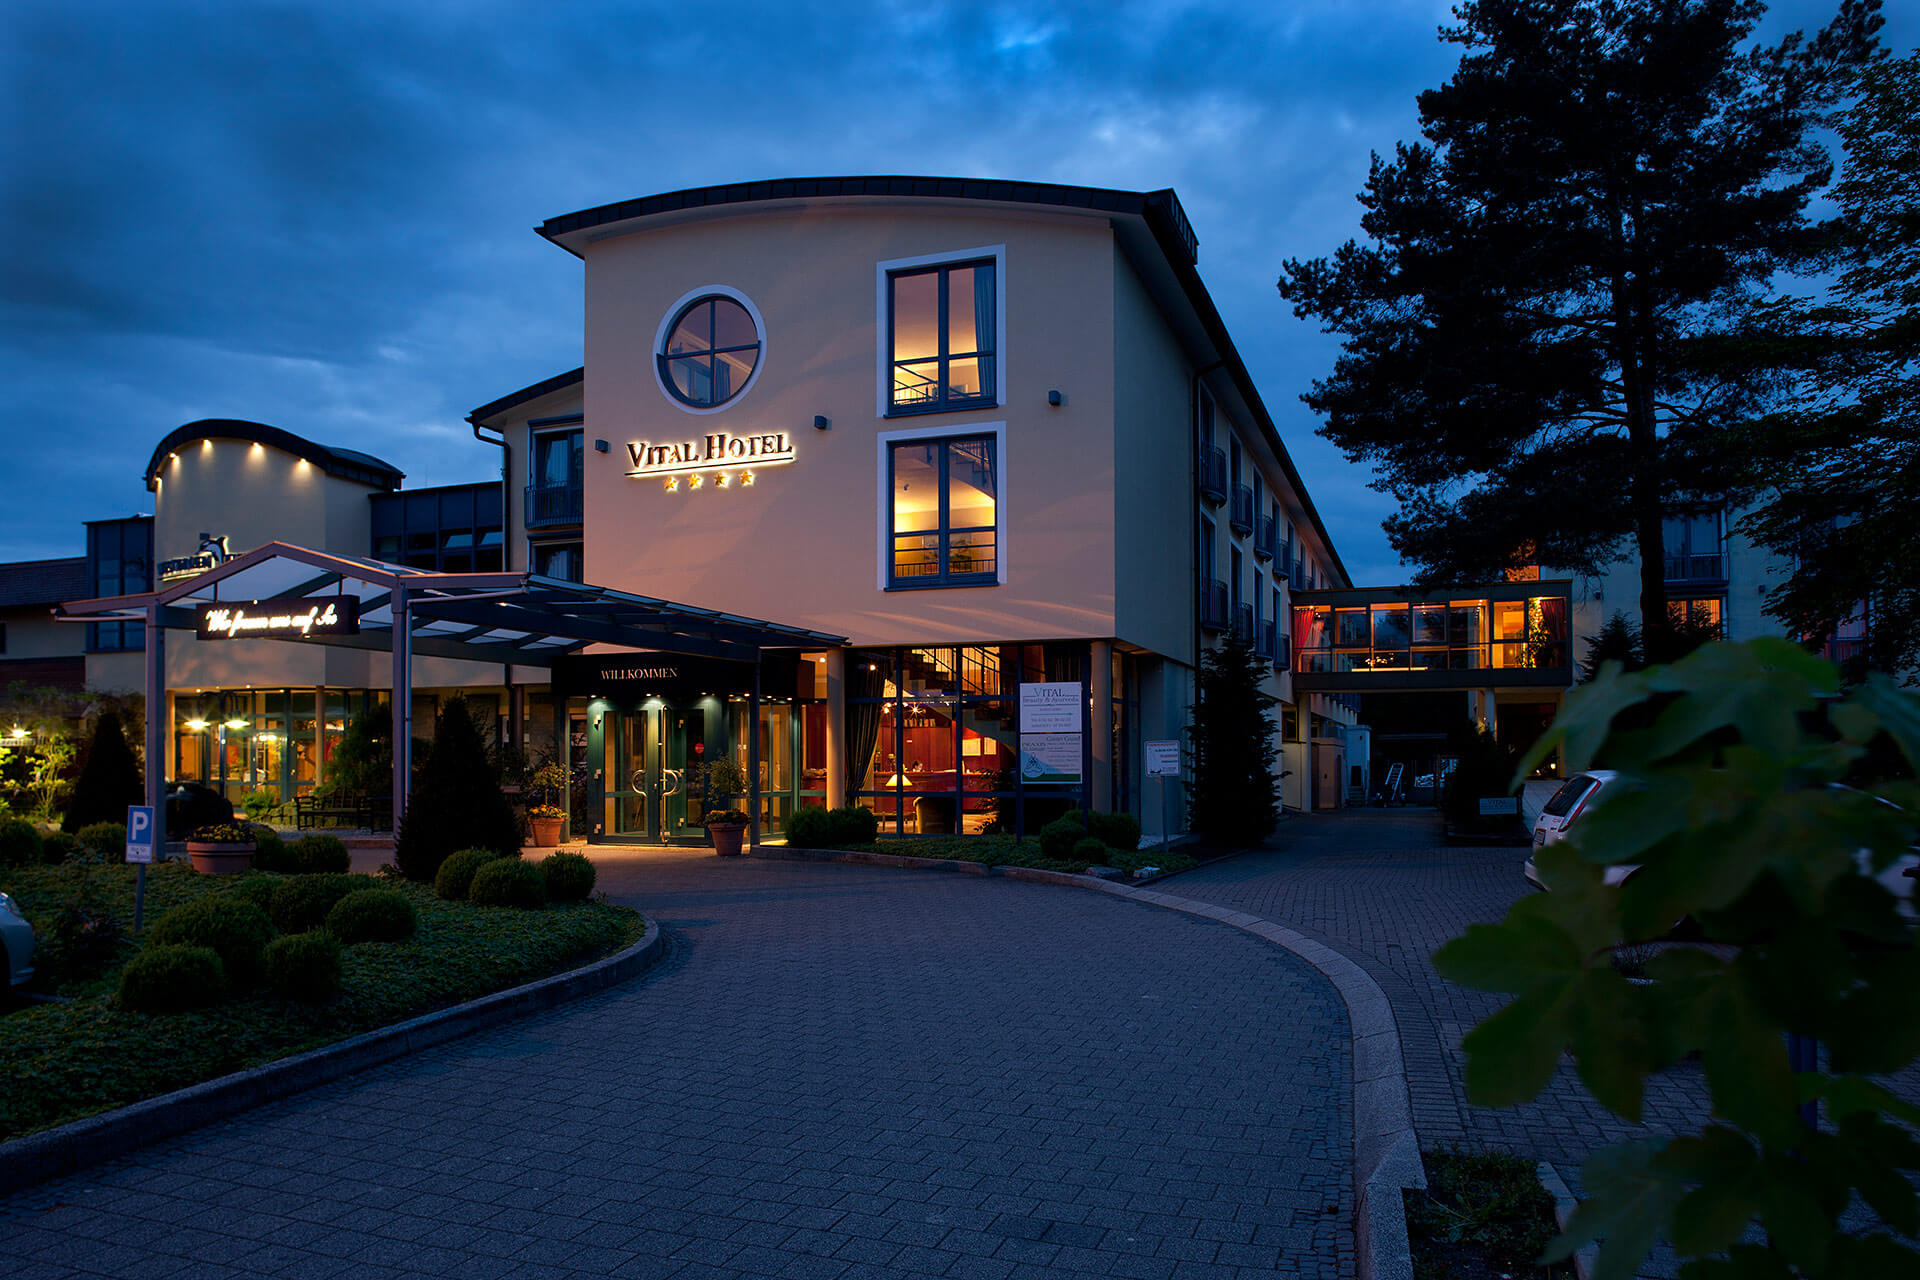 Vital Hotel Westfalen Therme Spa